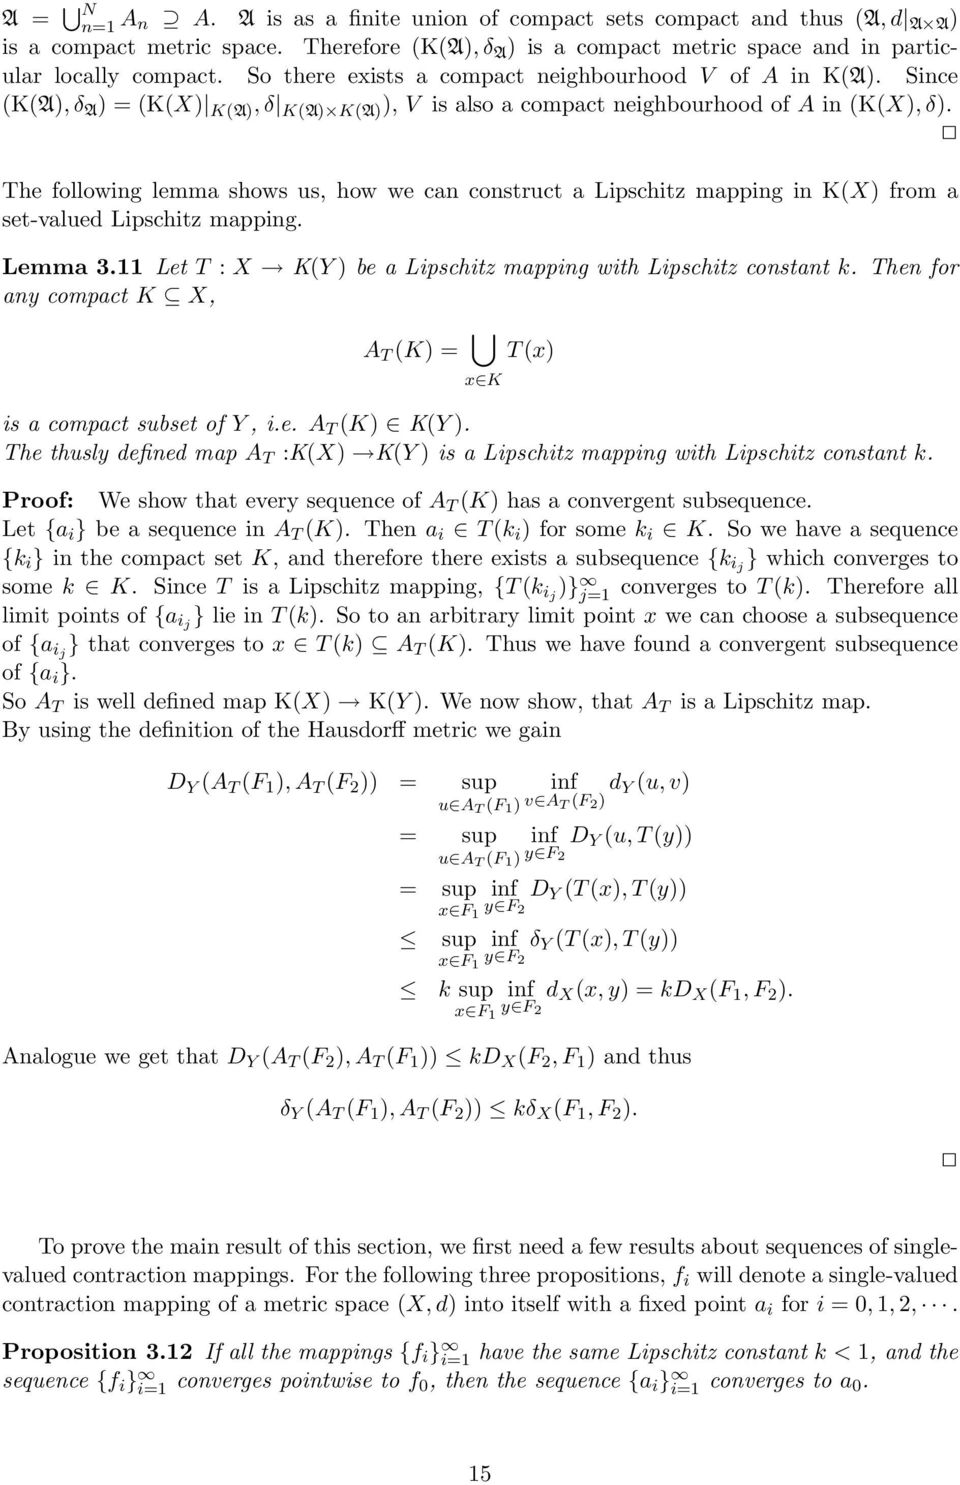 The following lemma shows us, how we can construct a Lipschitz mapping in K(X) from a set-valued Lipschitz mapping. Lemma 3.11 Let T : X K(Y ) be a Lipschitz mapping with Lipschitz constant k.